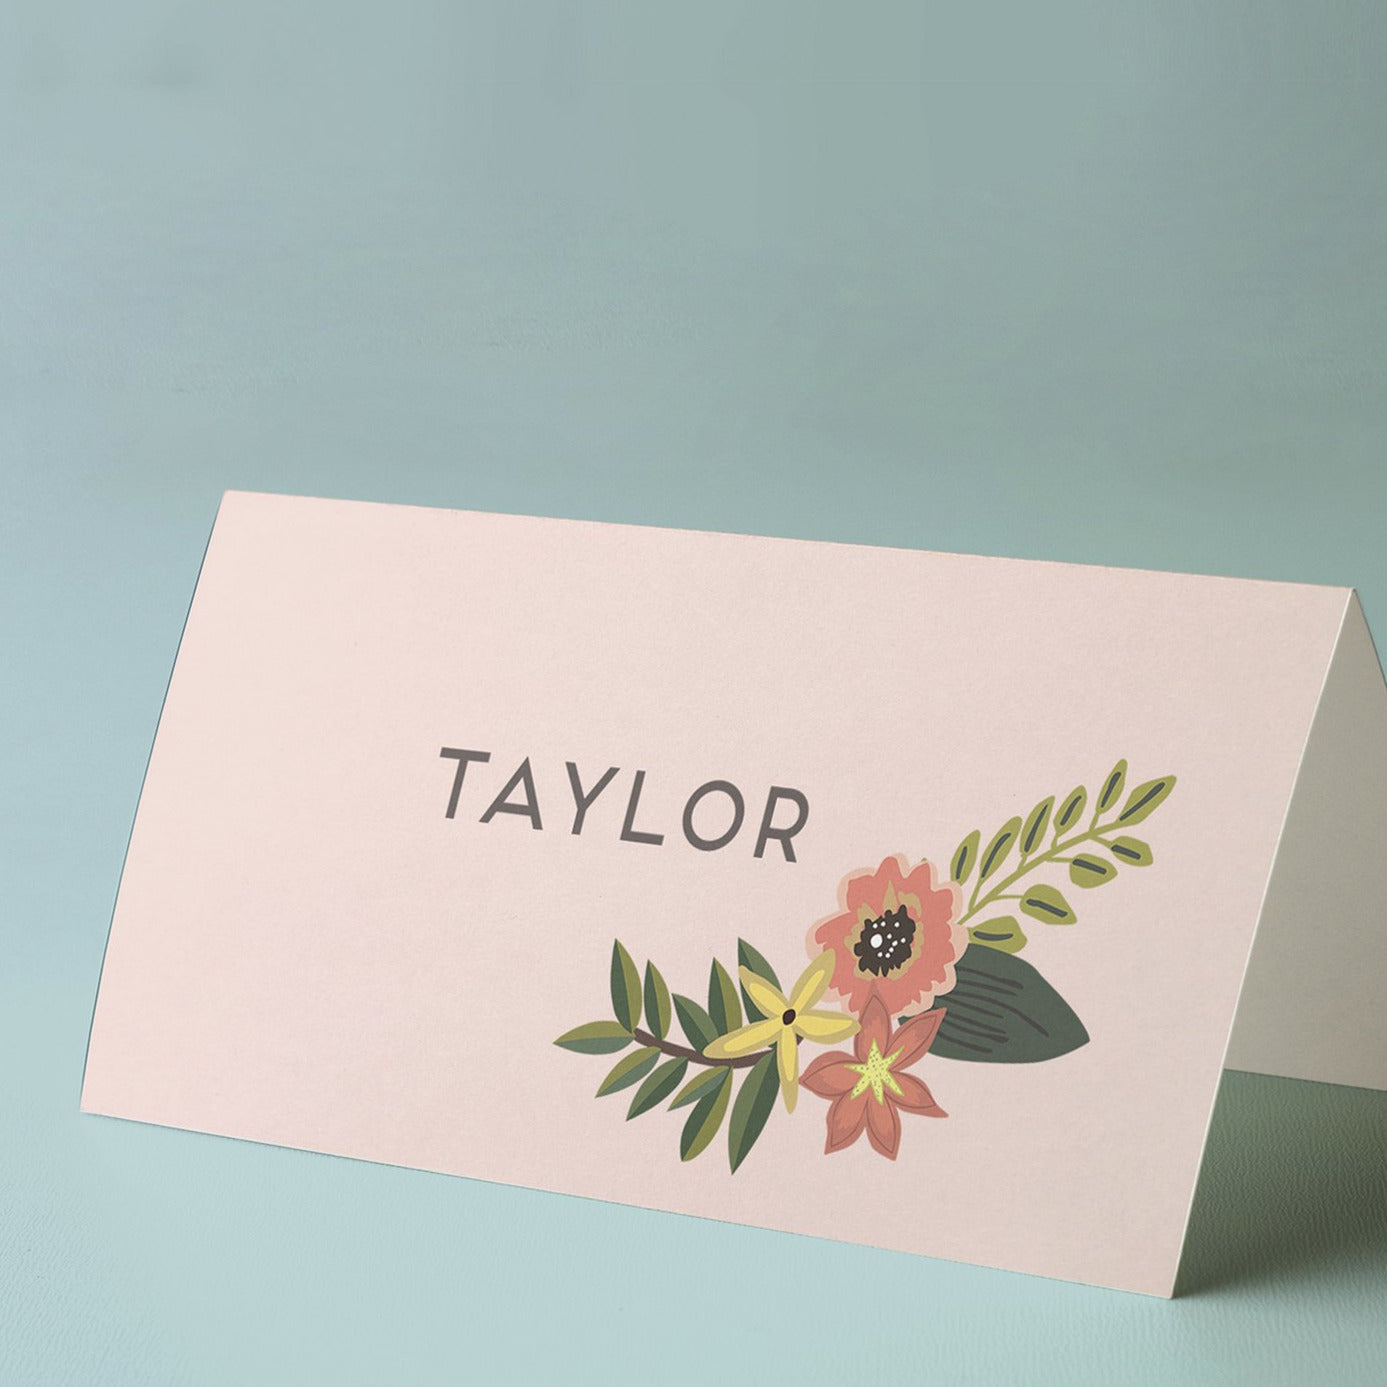 Rustic, floral placecards